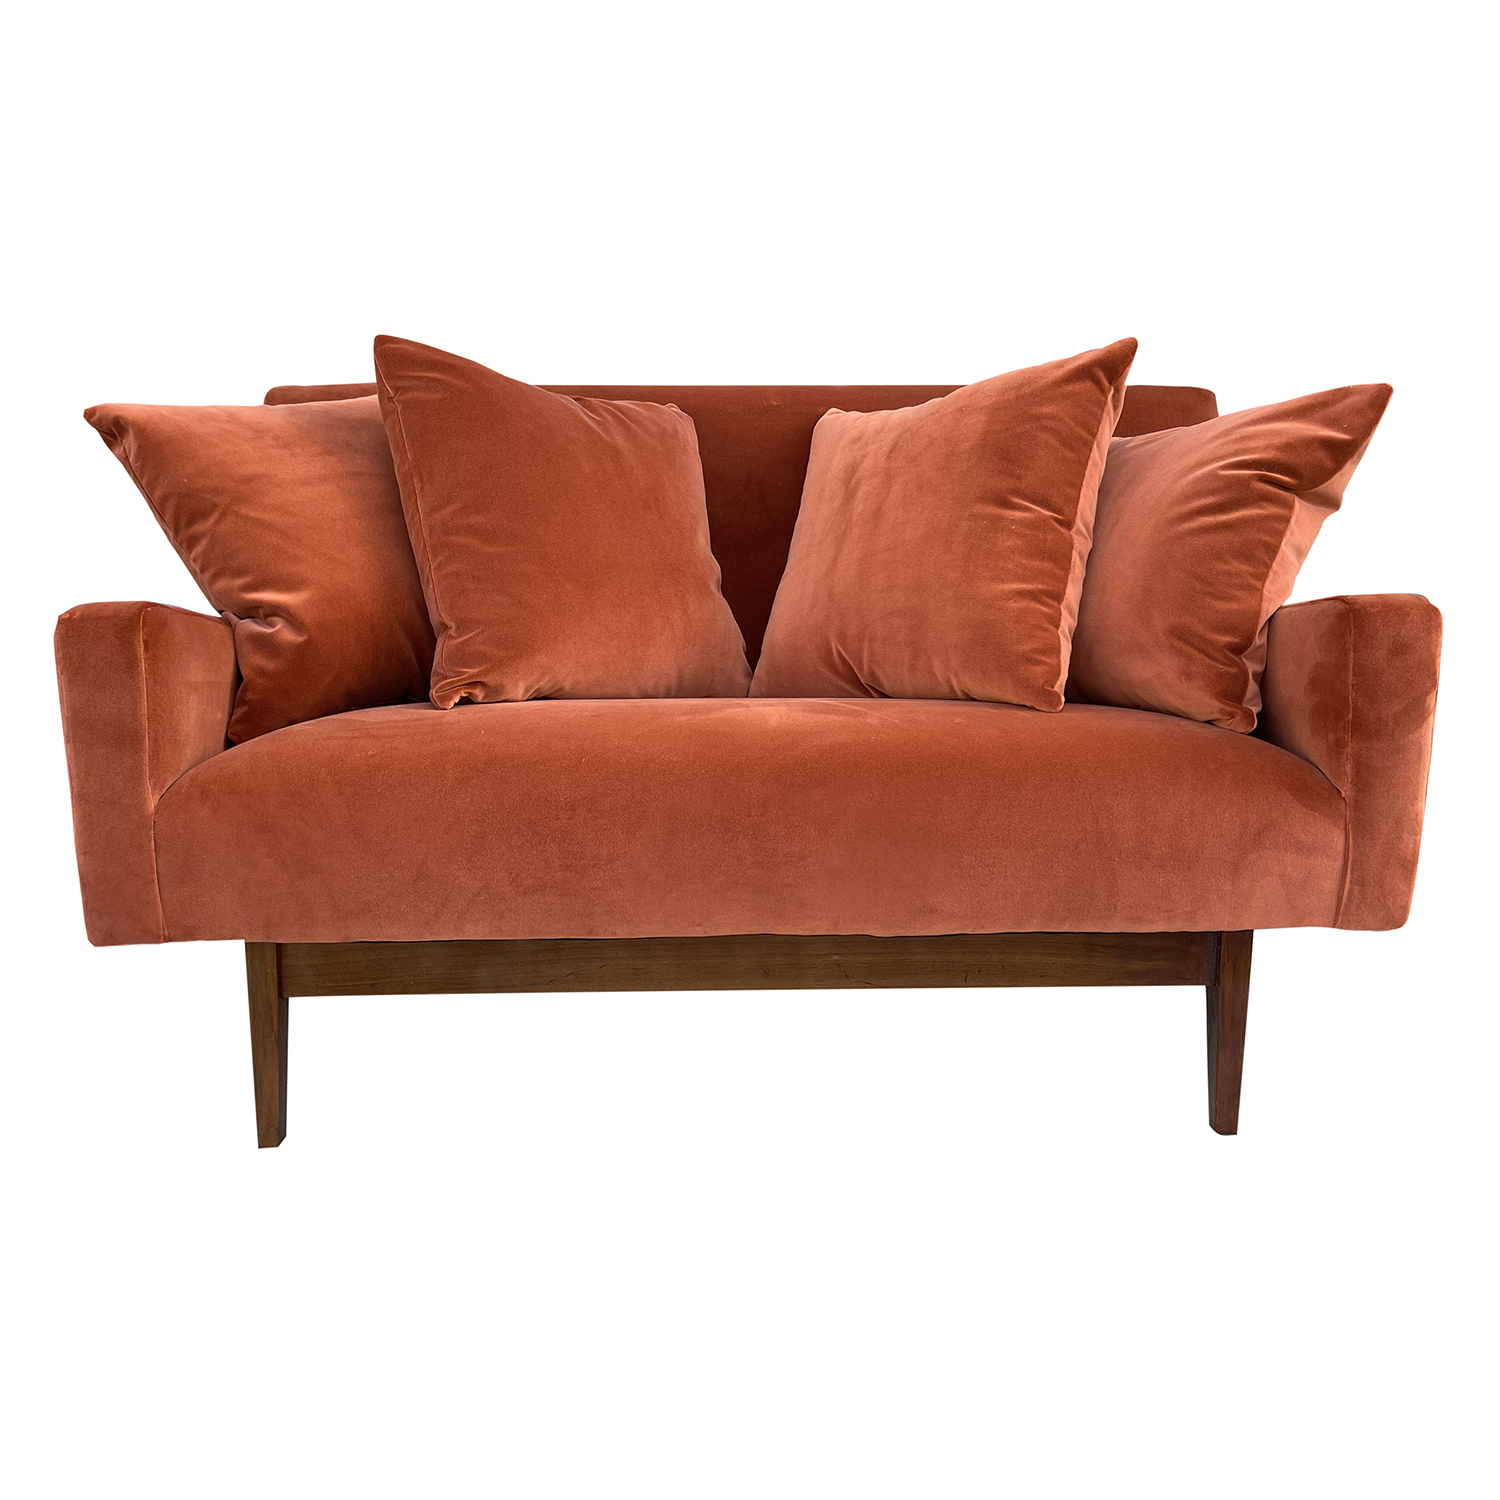 20th Century American Small Two Seater Sofa – Walnut Settee by Jens Risom Design